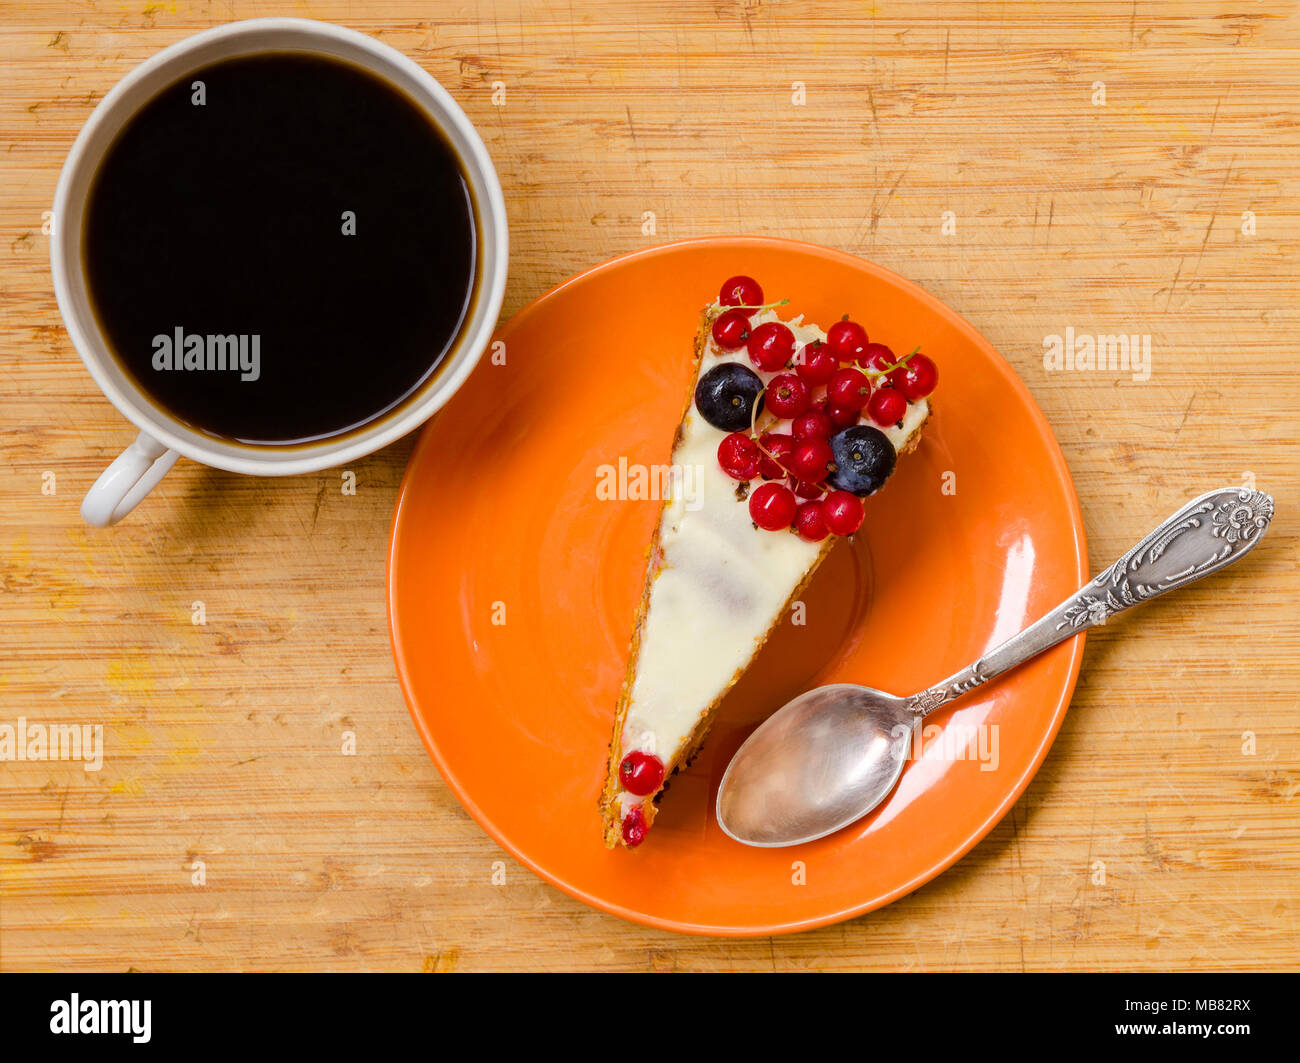 top view of composition with carrot cake and a cup of black coffee - Stock Image